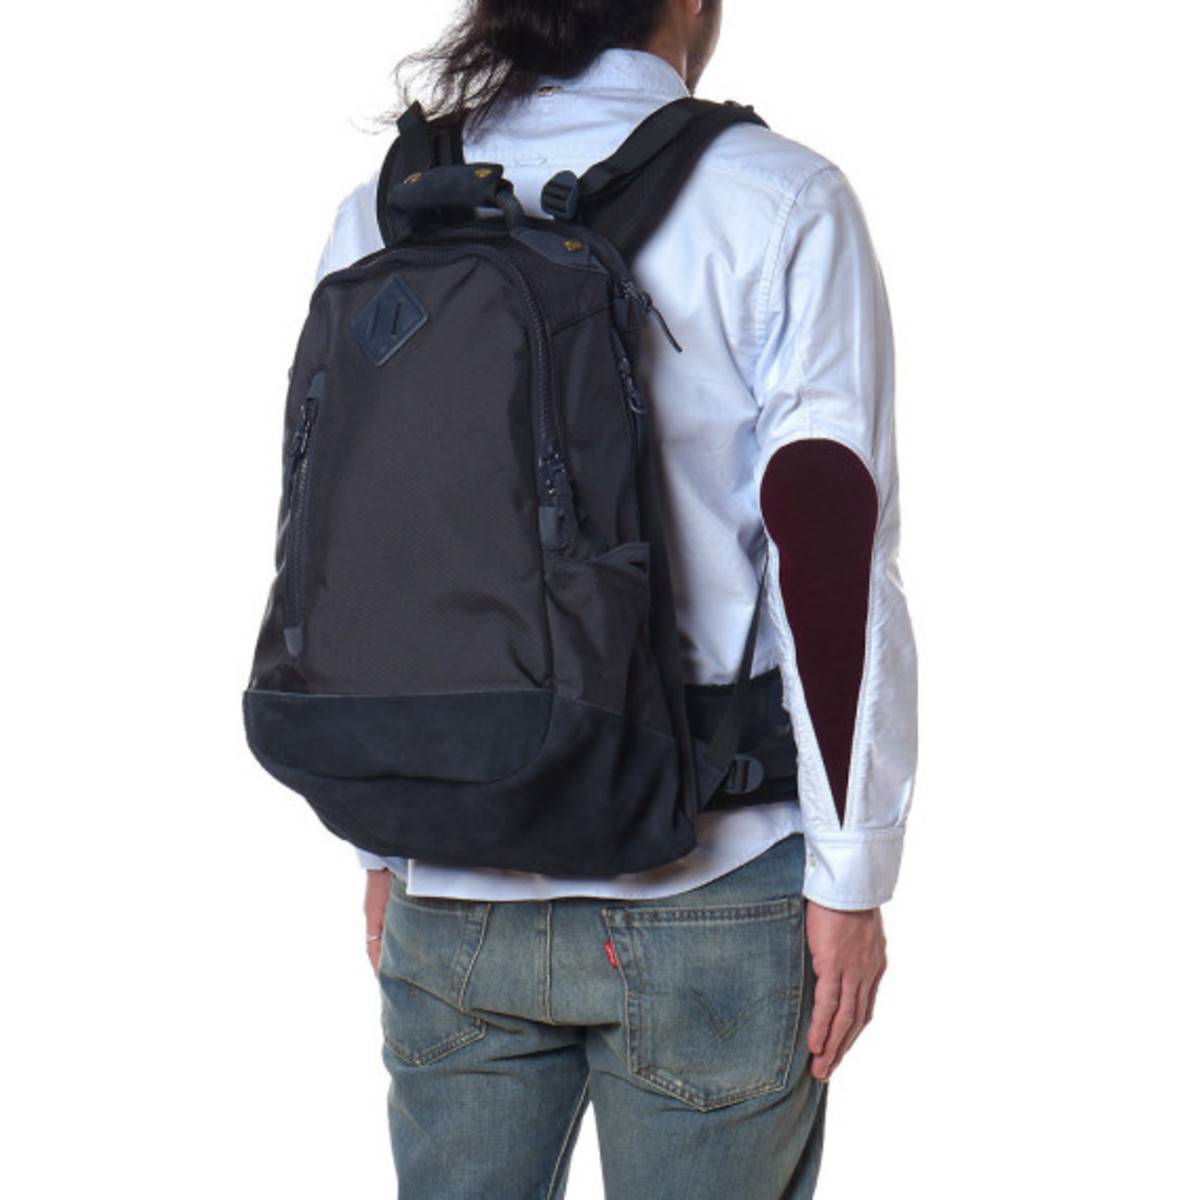 visvim-ballistic-20l-backpack-navy-13